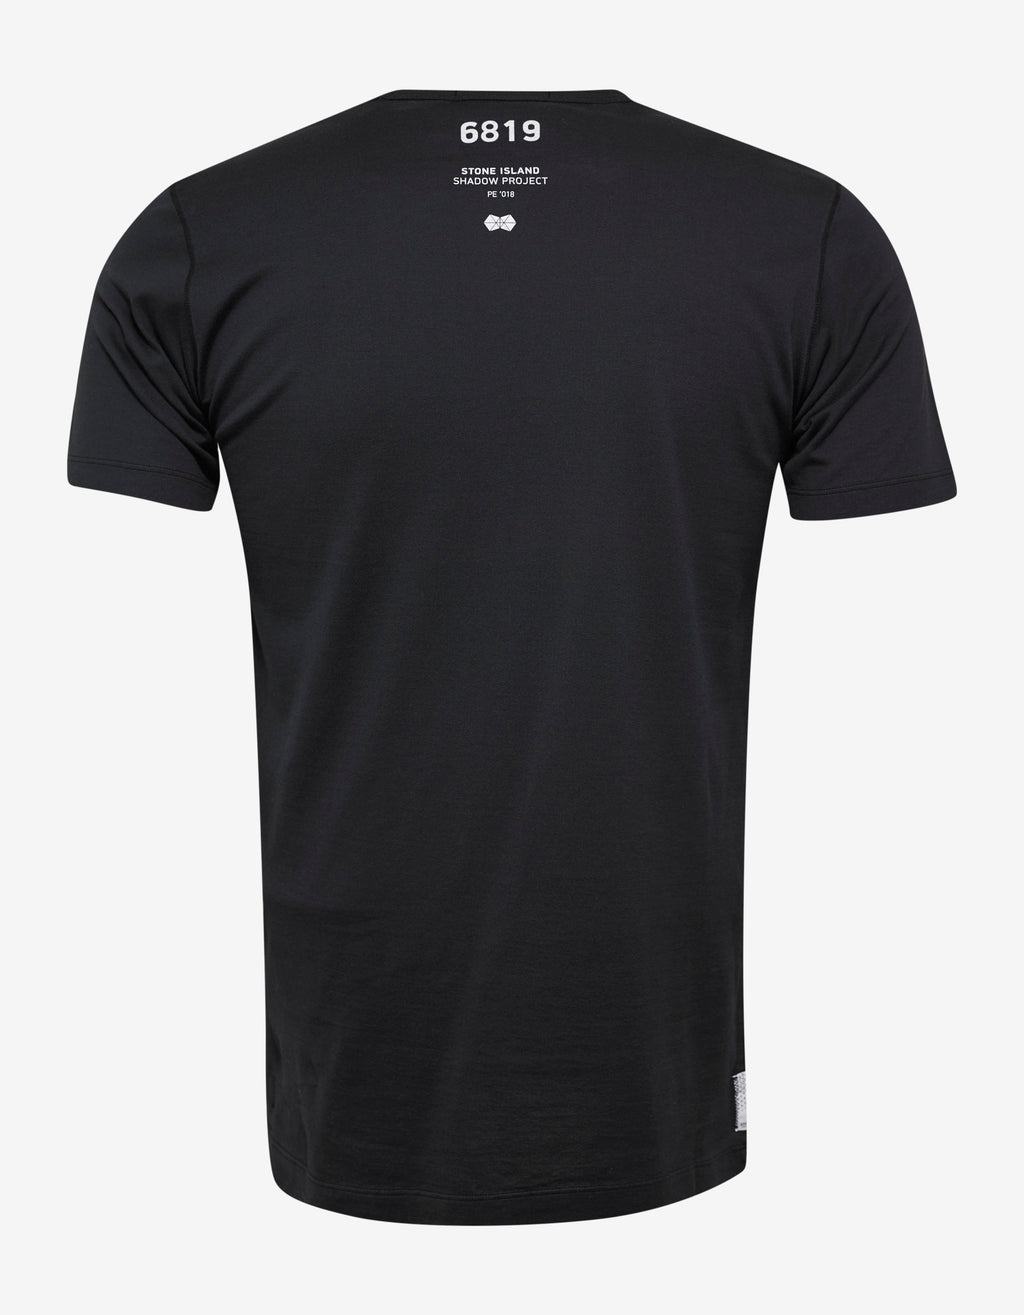 Black Chest Pocket Graphic T-Shirt